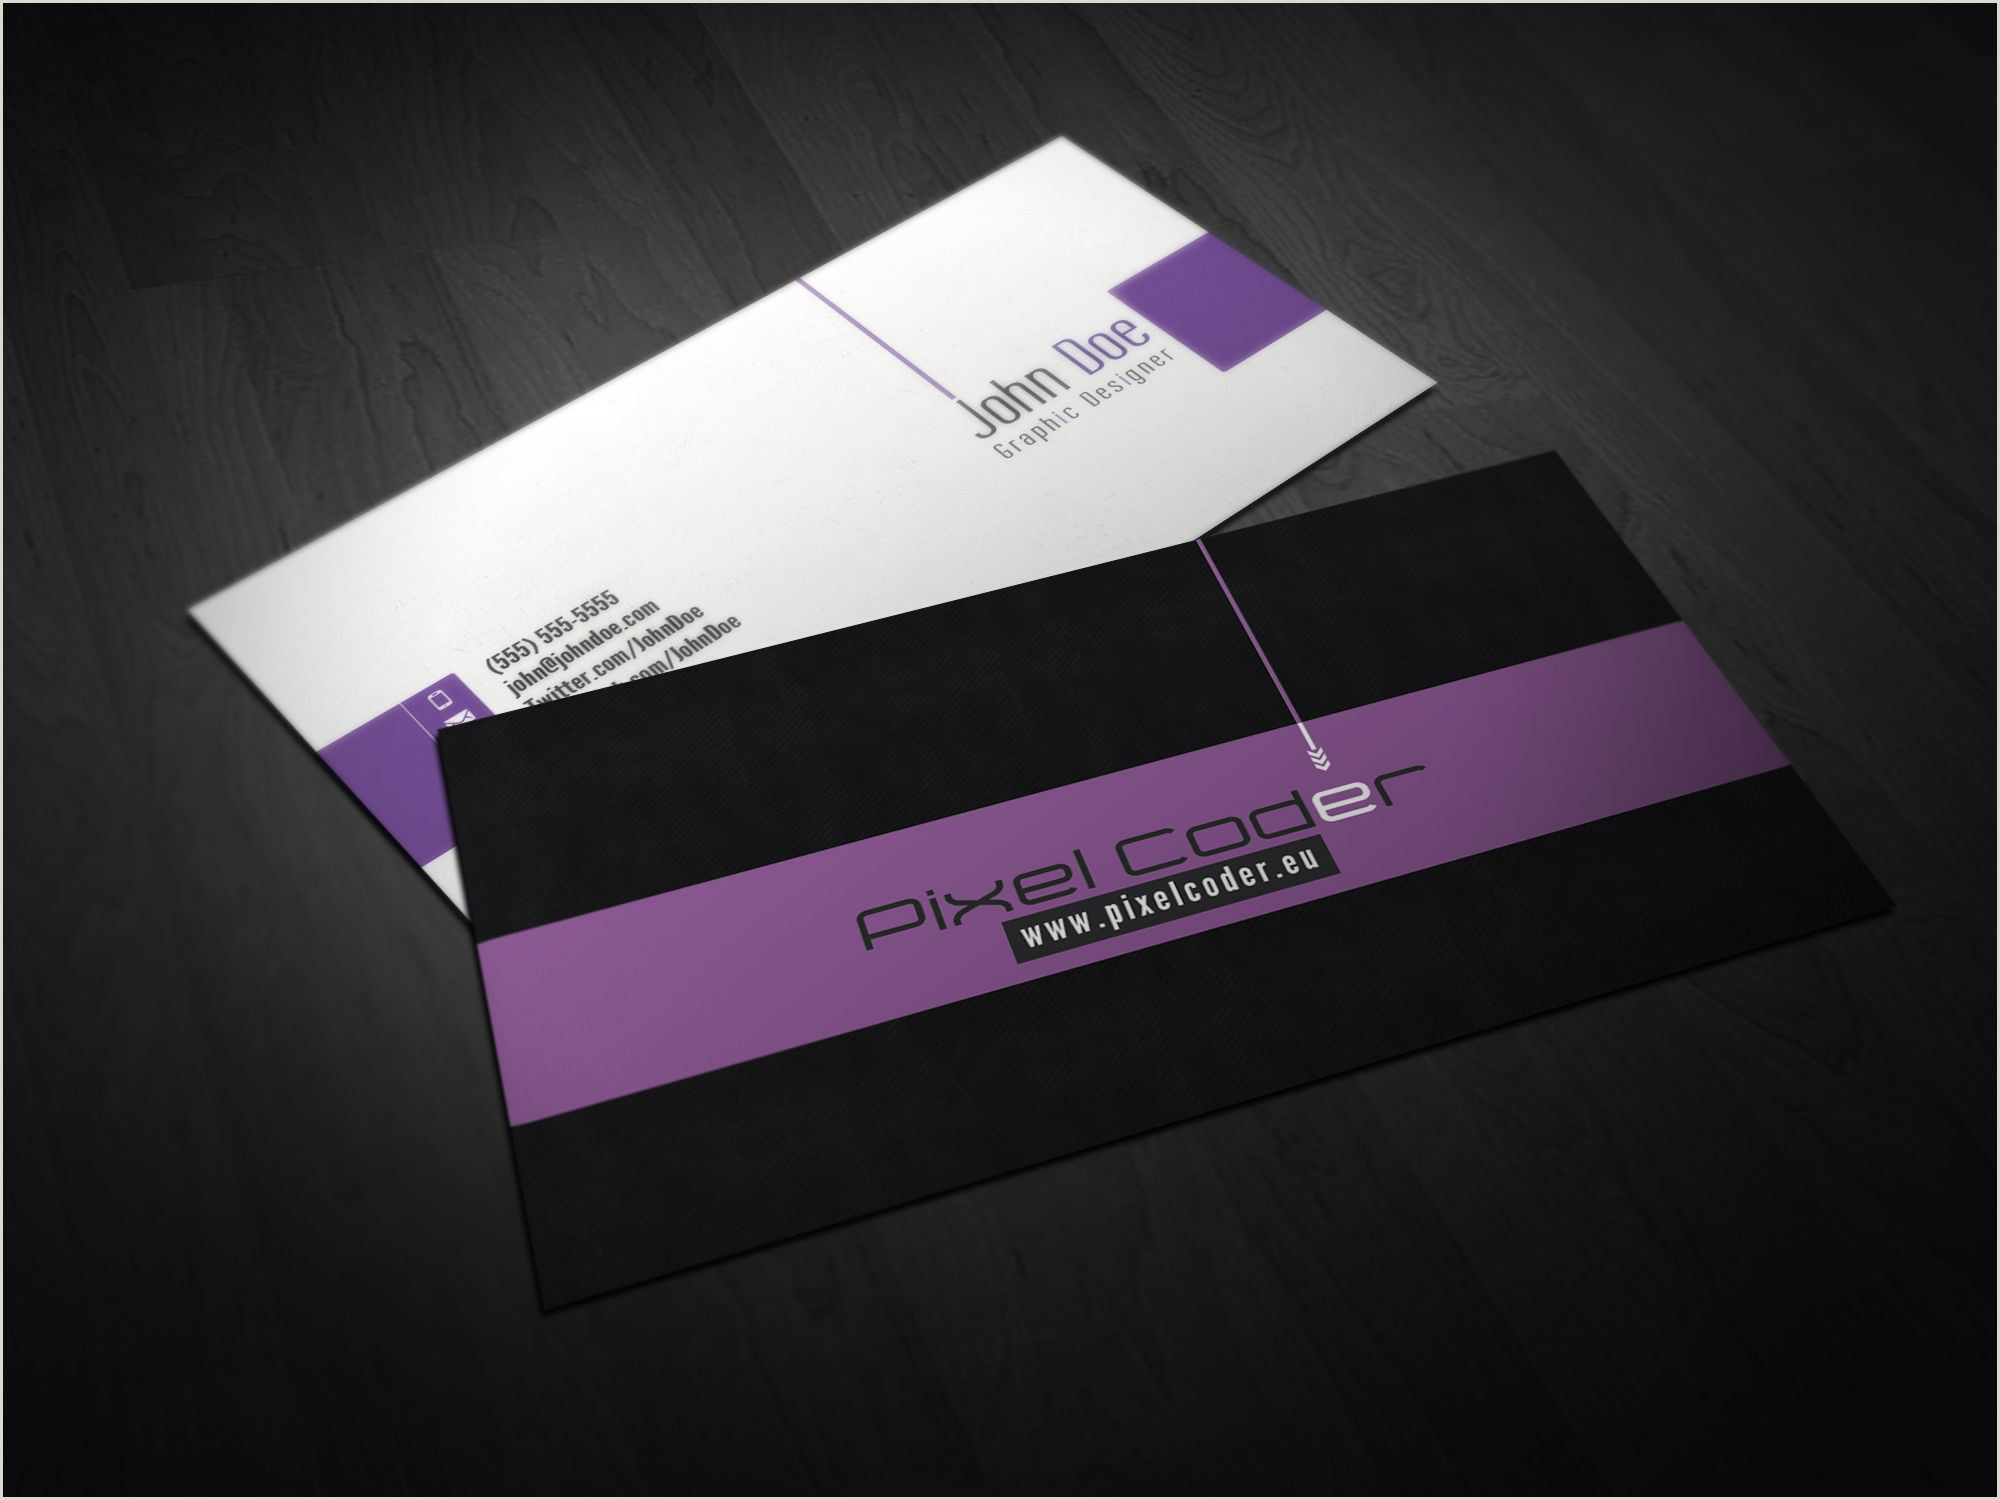 Best Business Cards For Small Business Shop Business Card Templatebest Business Templates